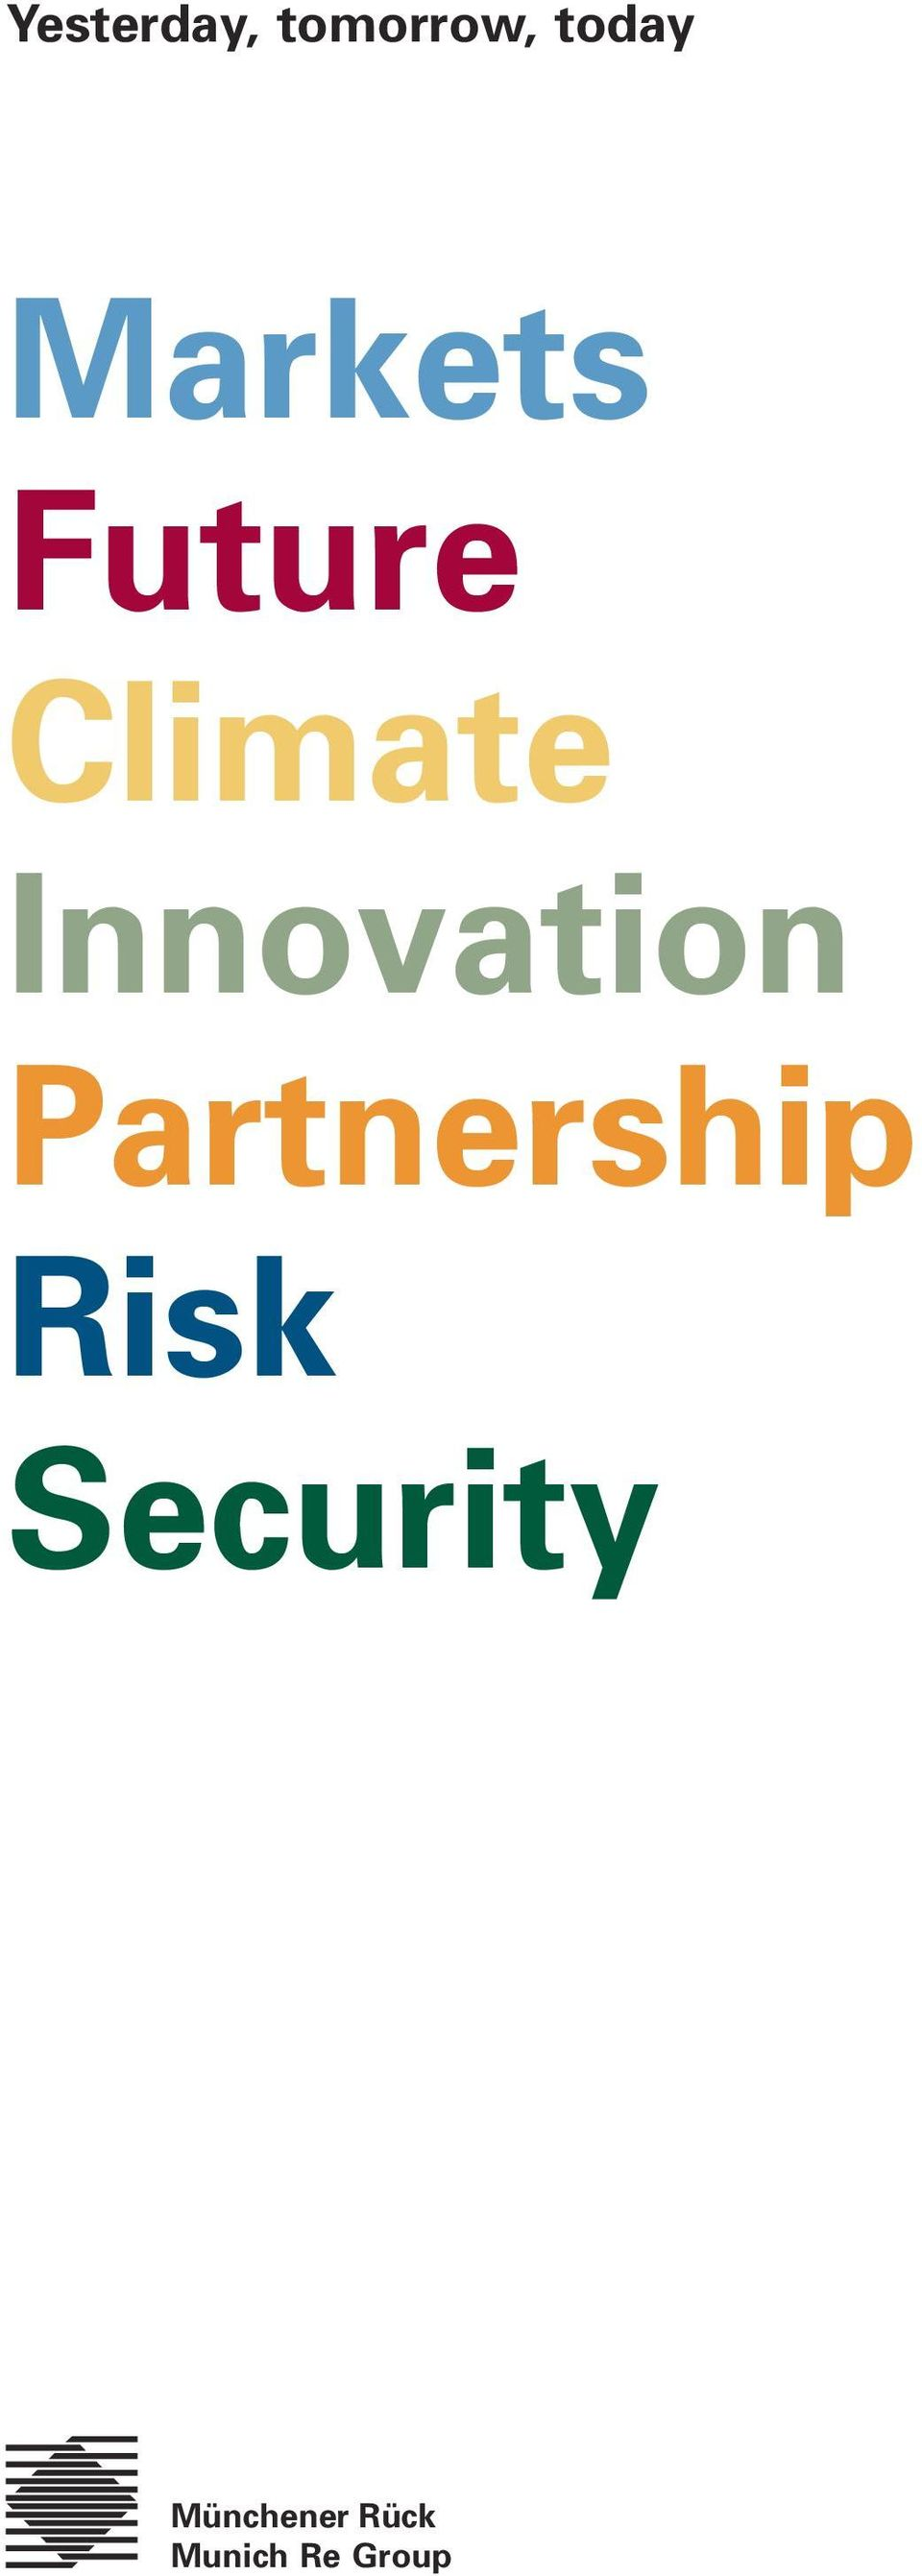 Innovation Partnership Risk